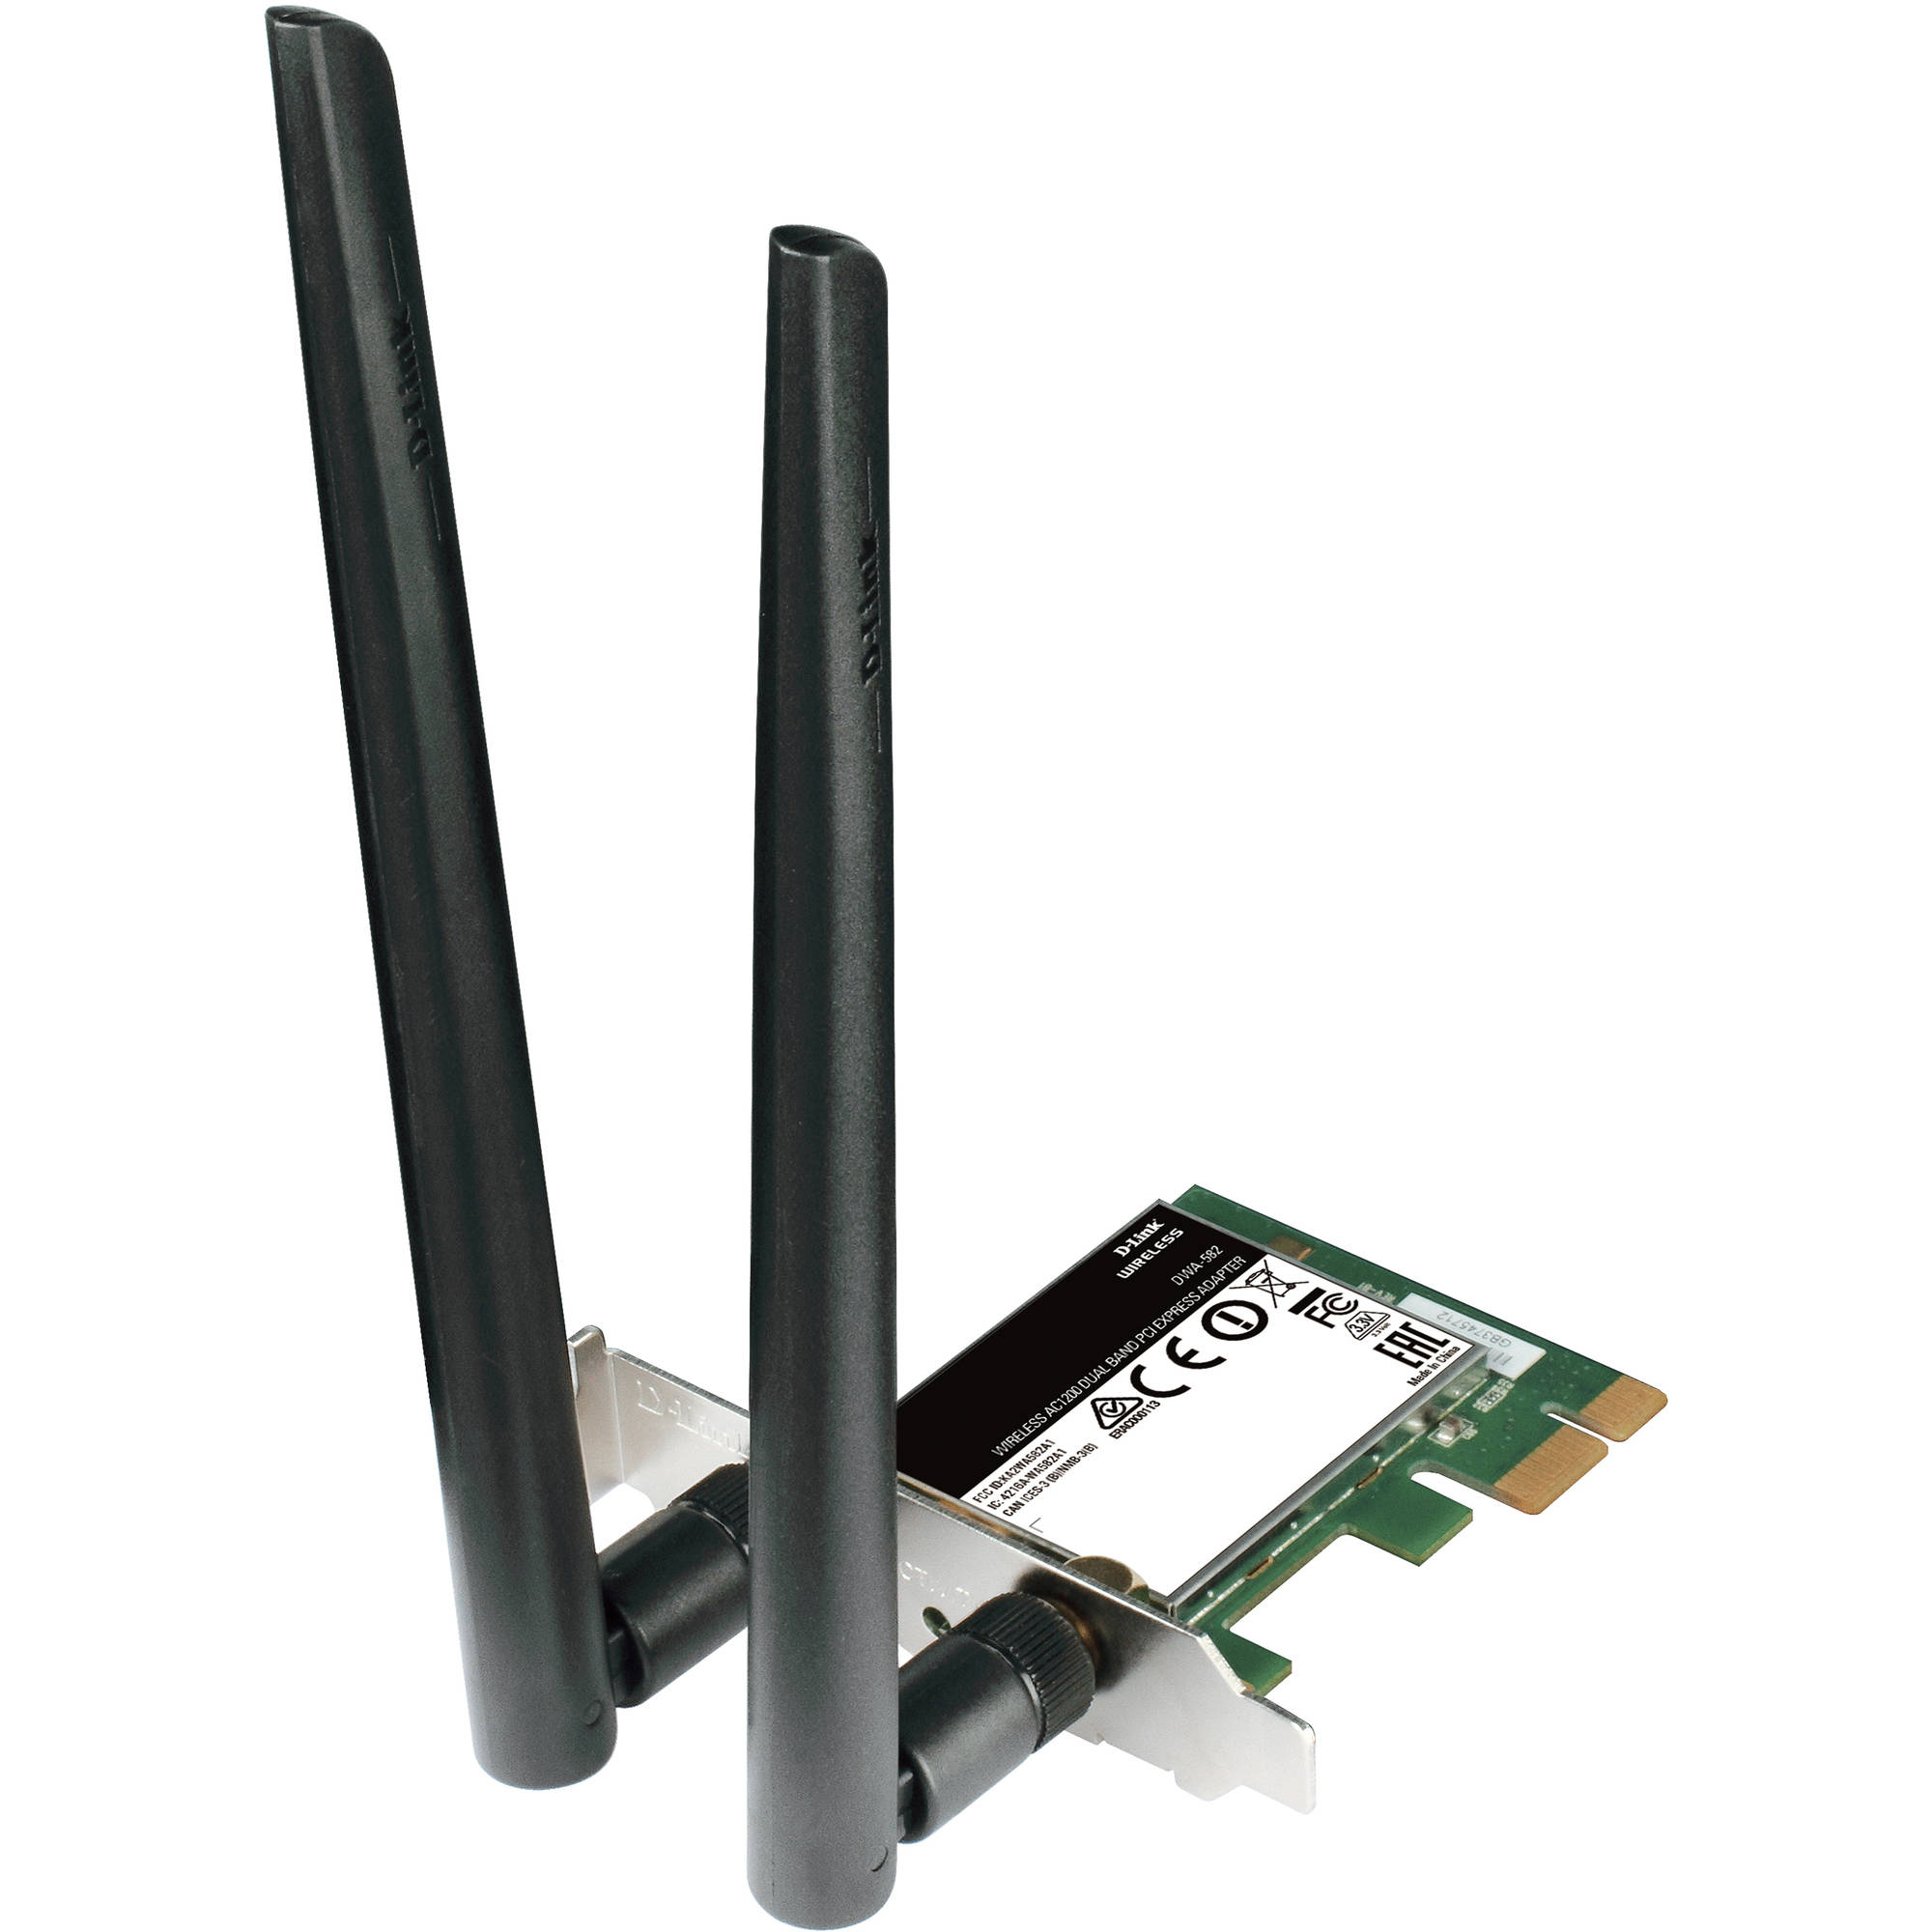 D-Link DWA-582 AC1200 WiFi PCI Express Adapter